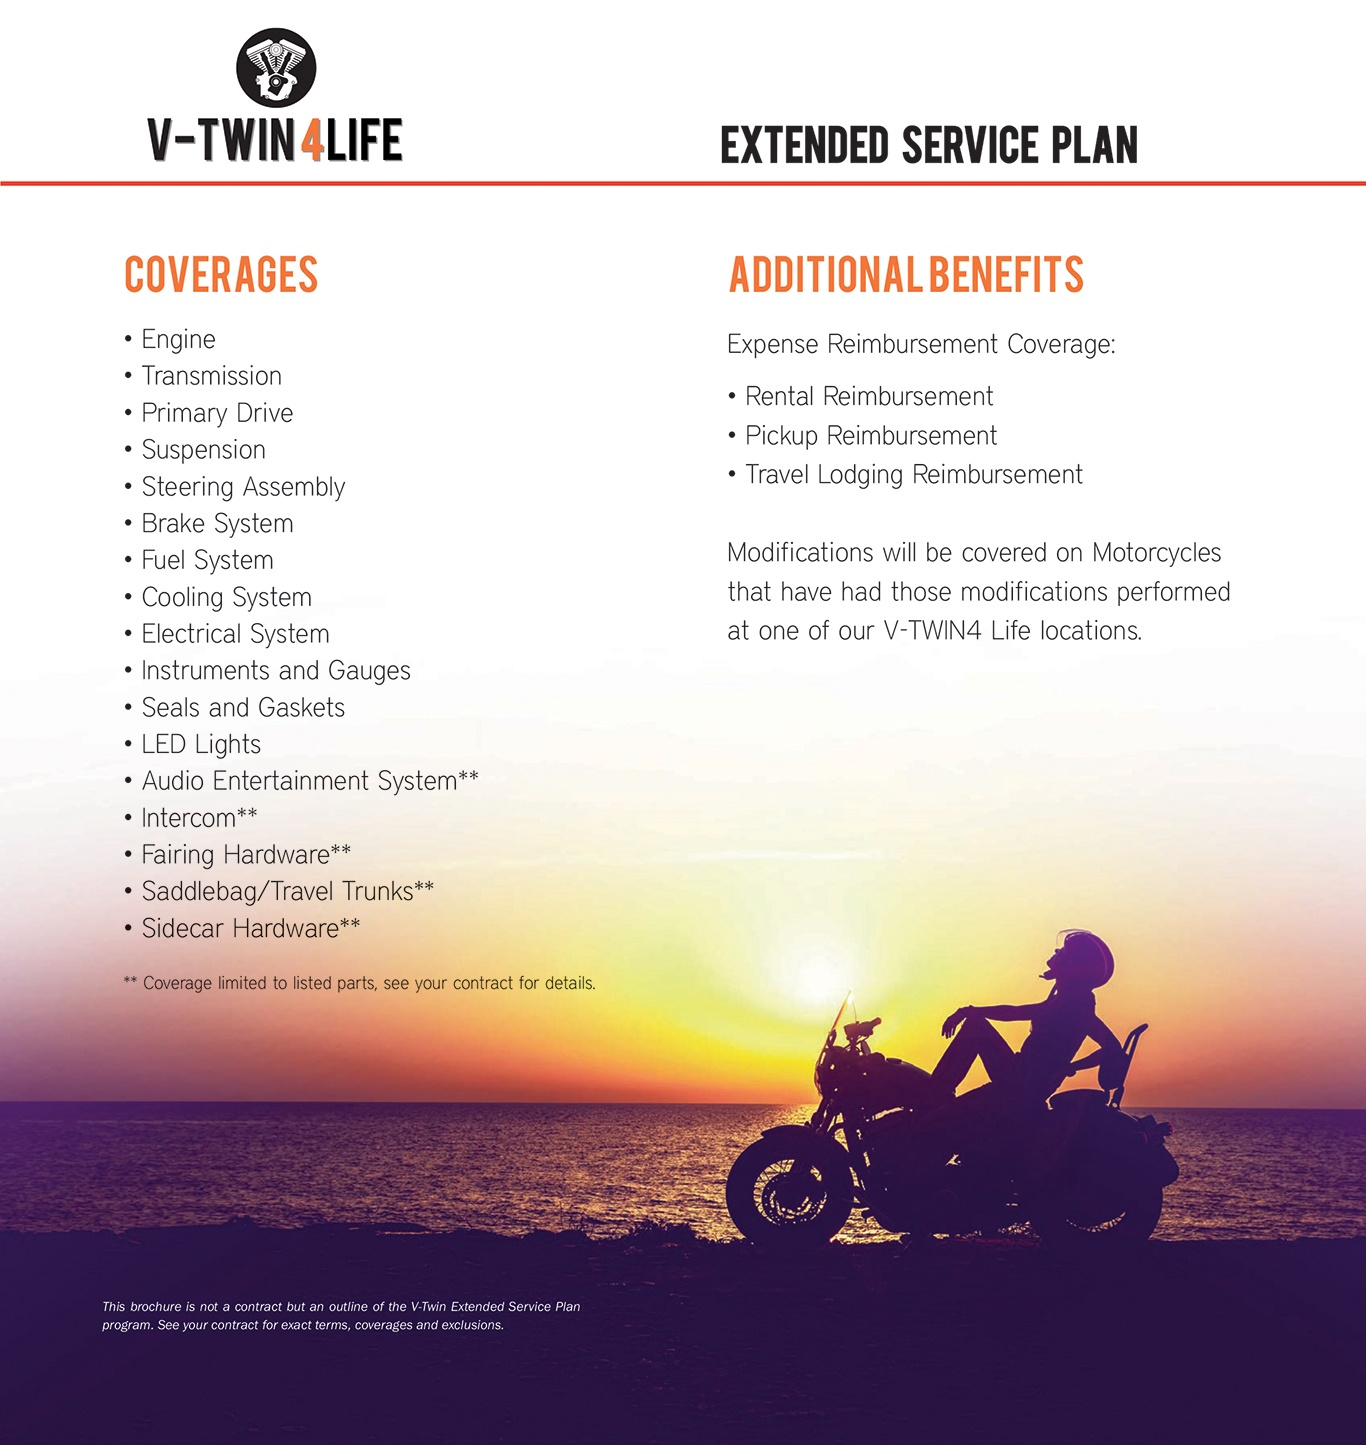 V-Twin Extended Service Plan